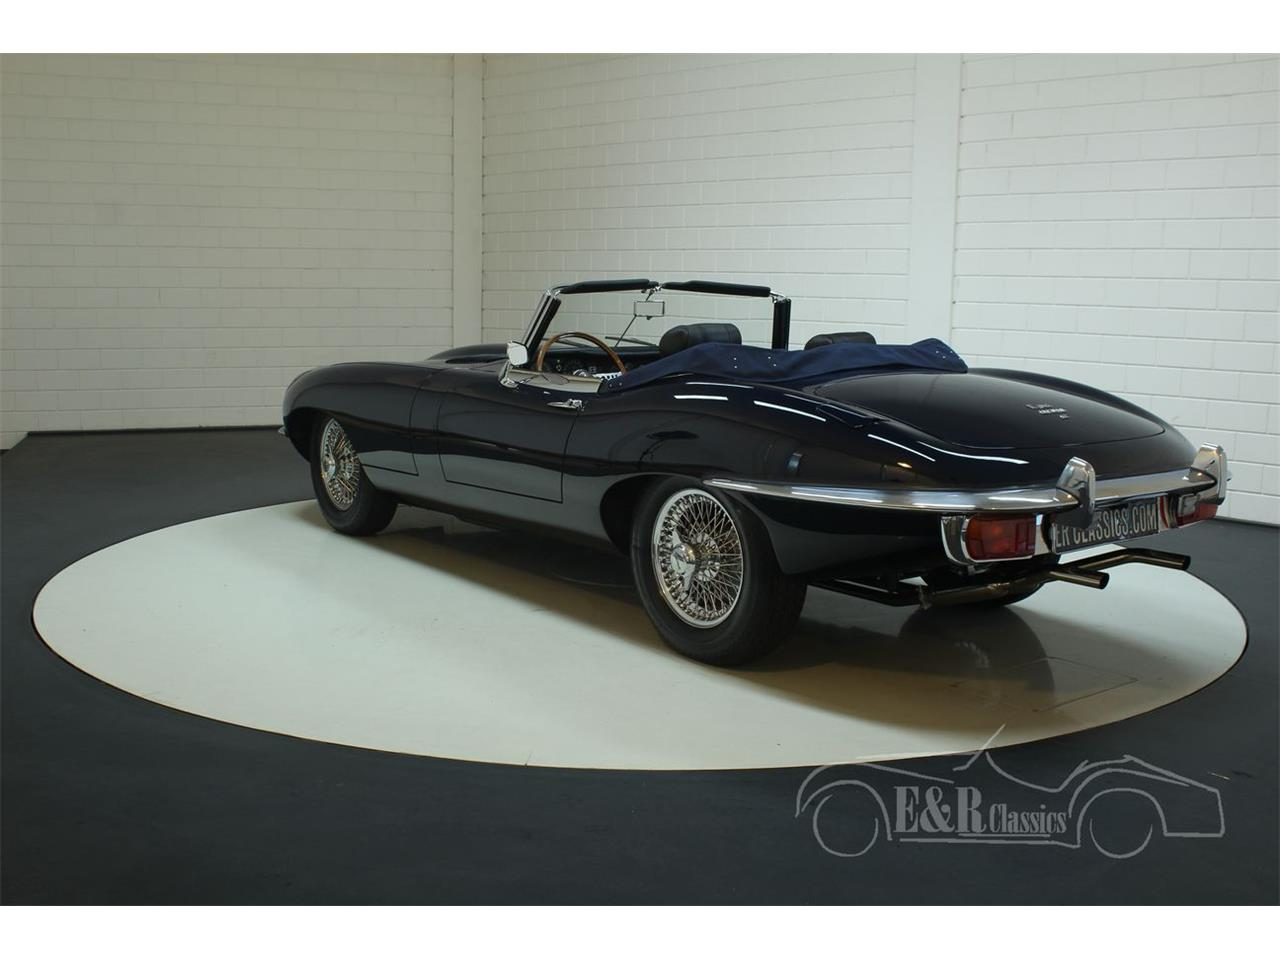 Large Picture of Classic 1969 Jaguar E-Type located in Noord-Brabant - $139,400.00 - Q45K